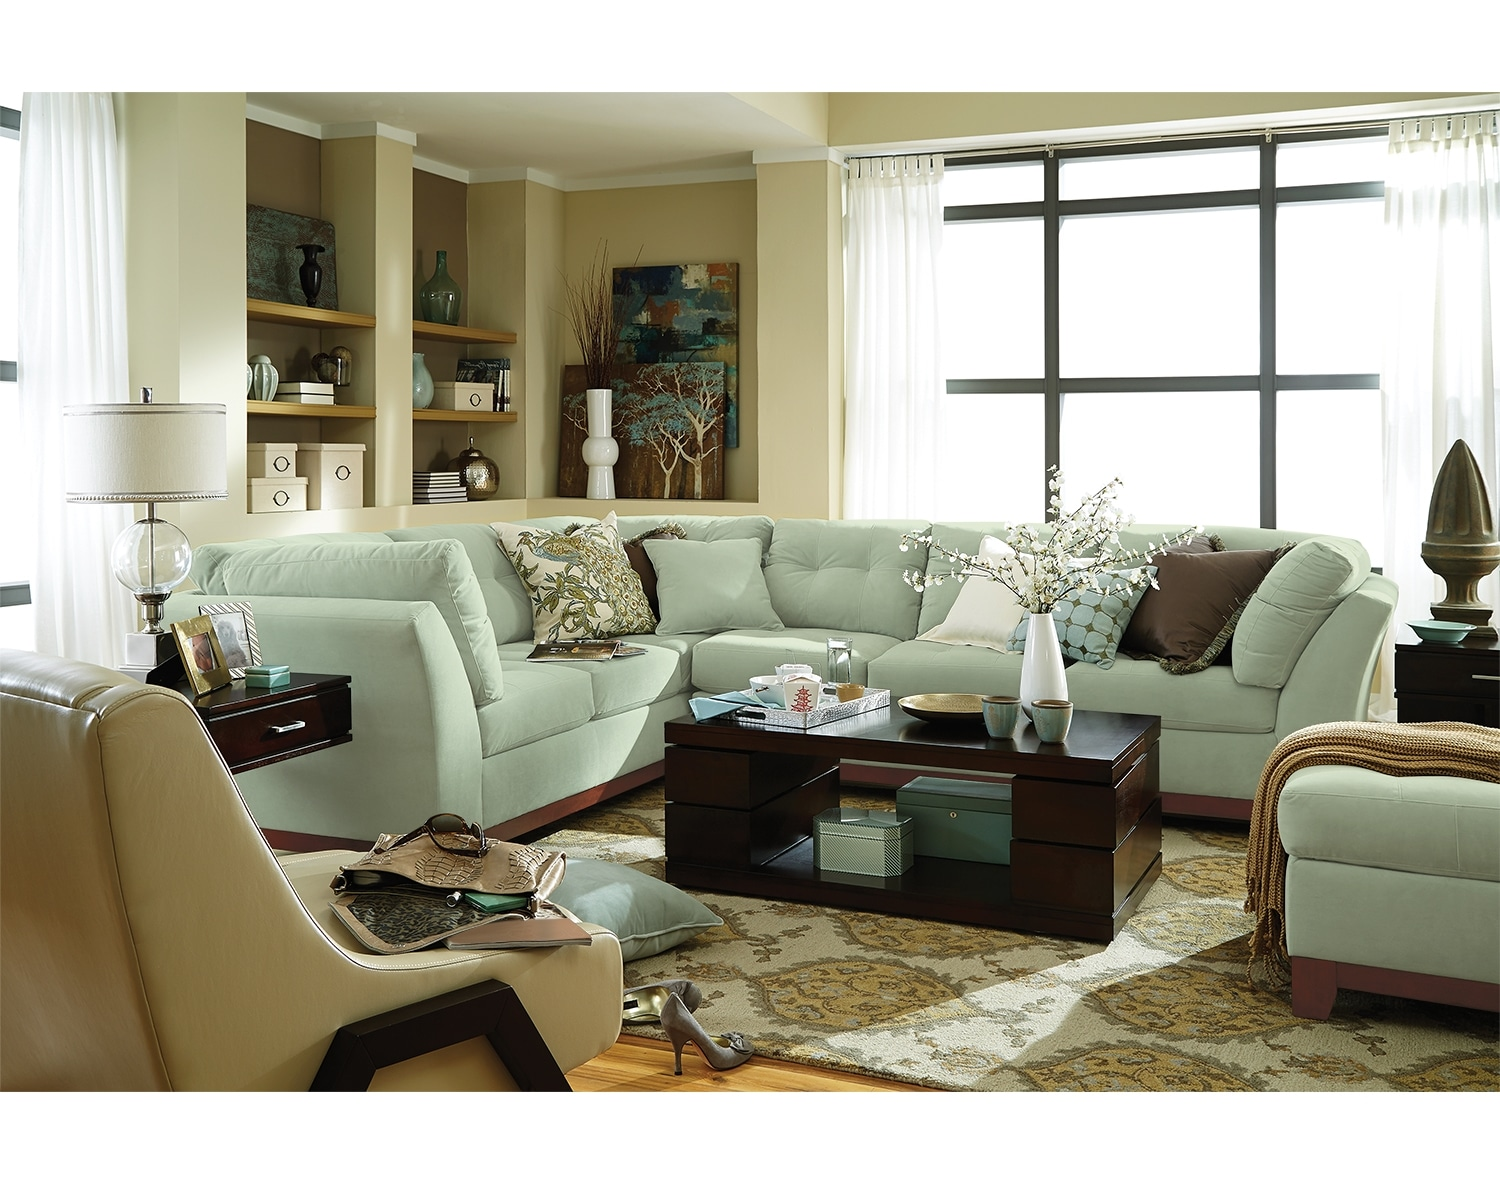 Living Room Furniture - The Brookside II Spa Collection - 3 Pc. Sectional